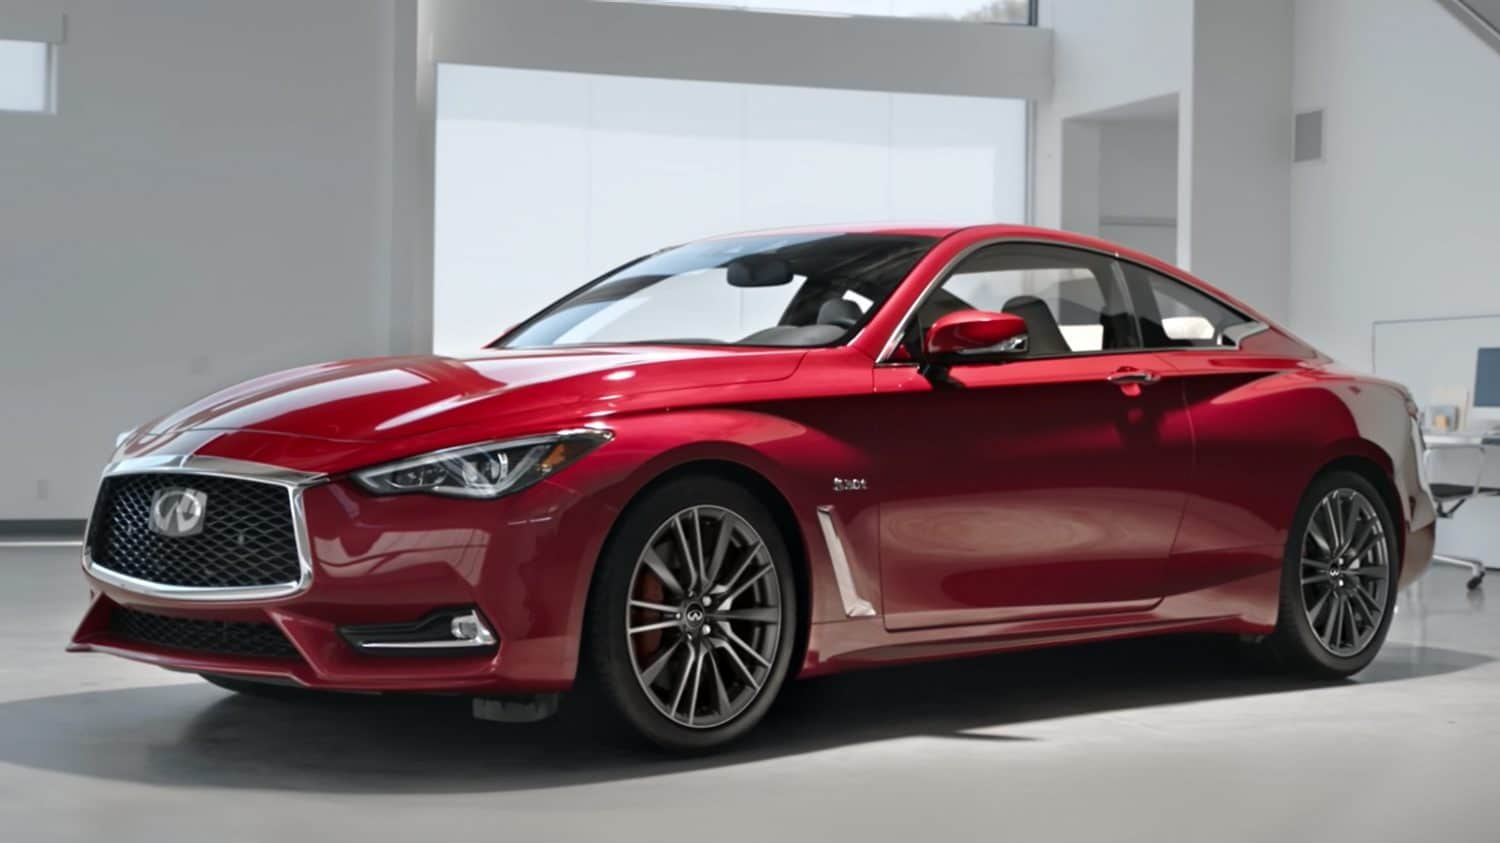 23 Best Infiniti Q60 2020 Reviews